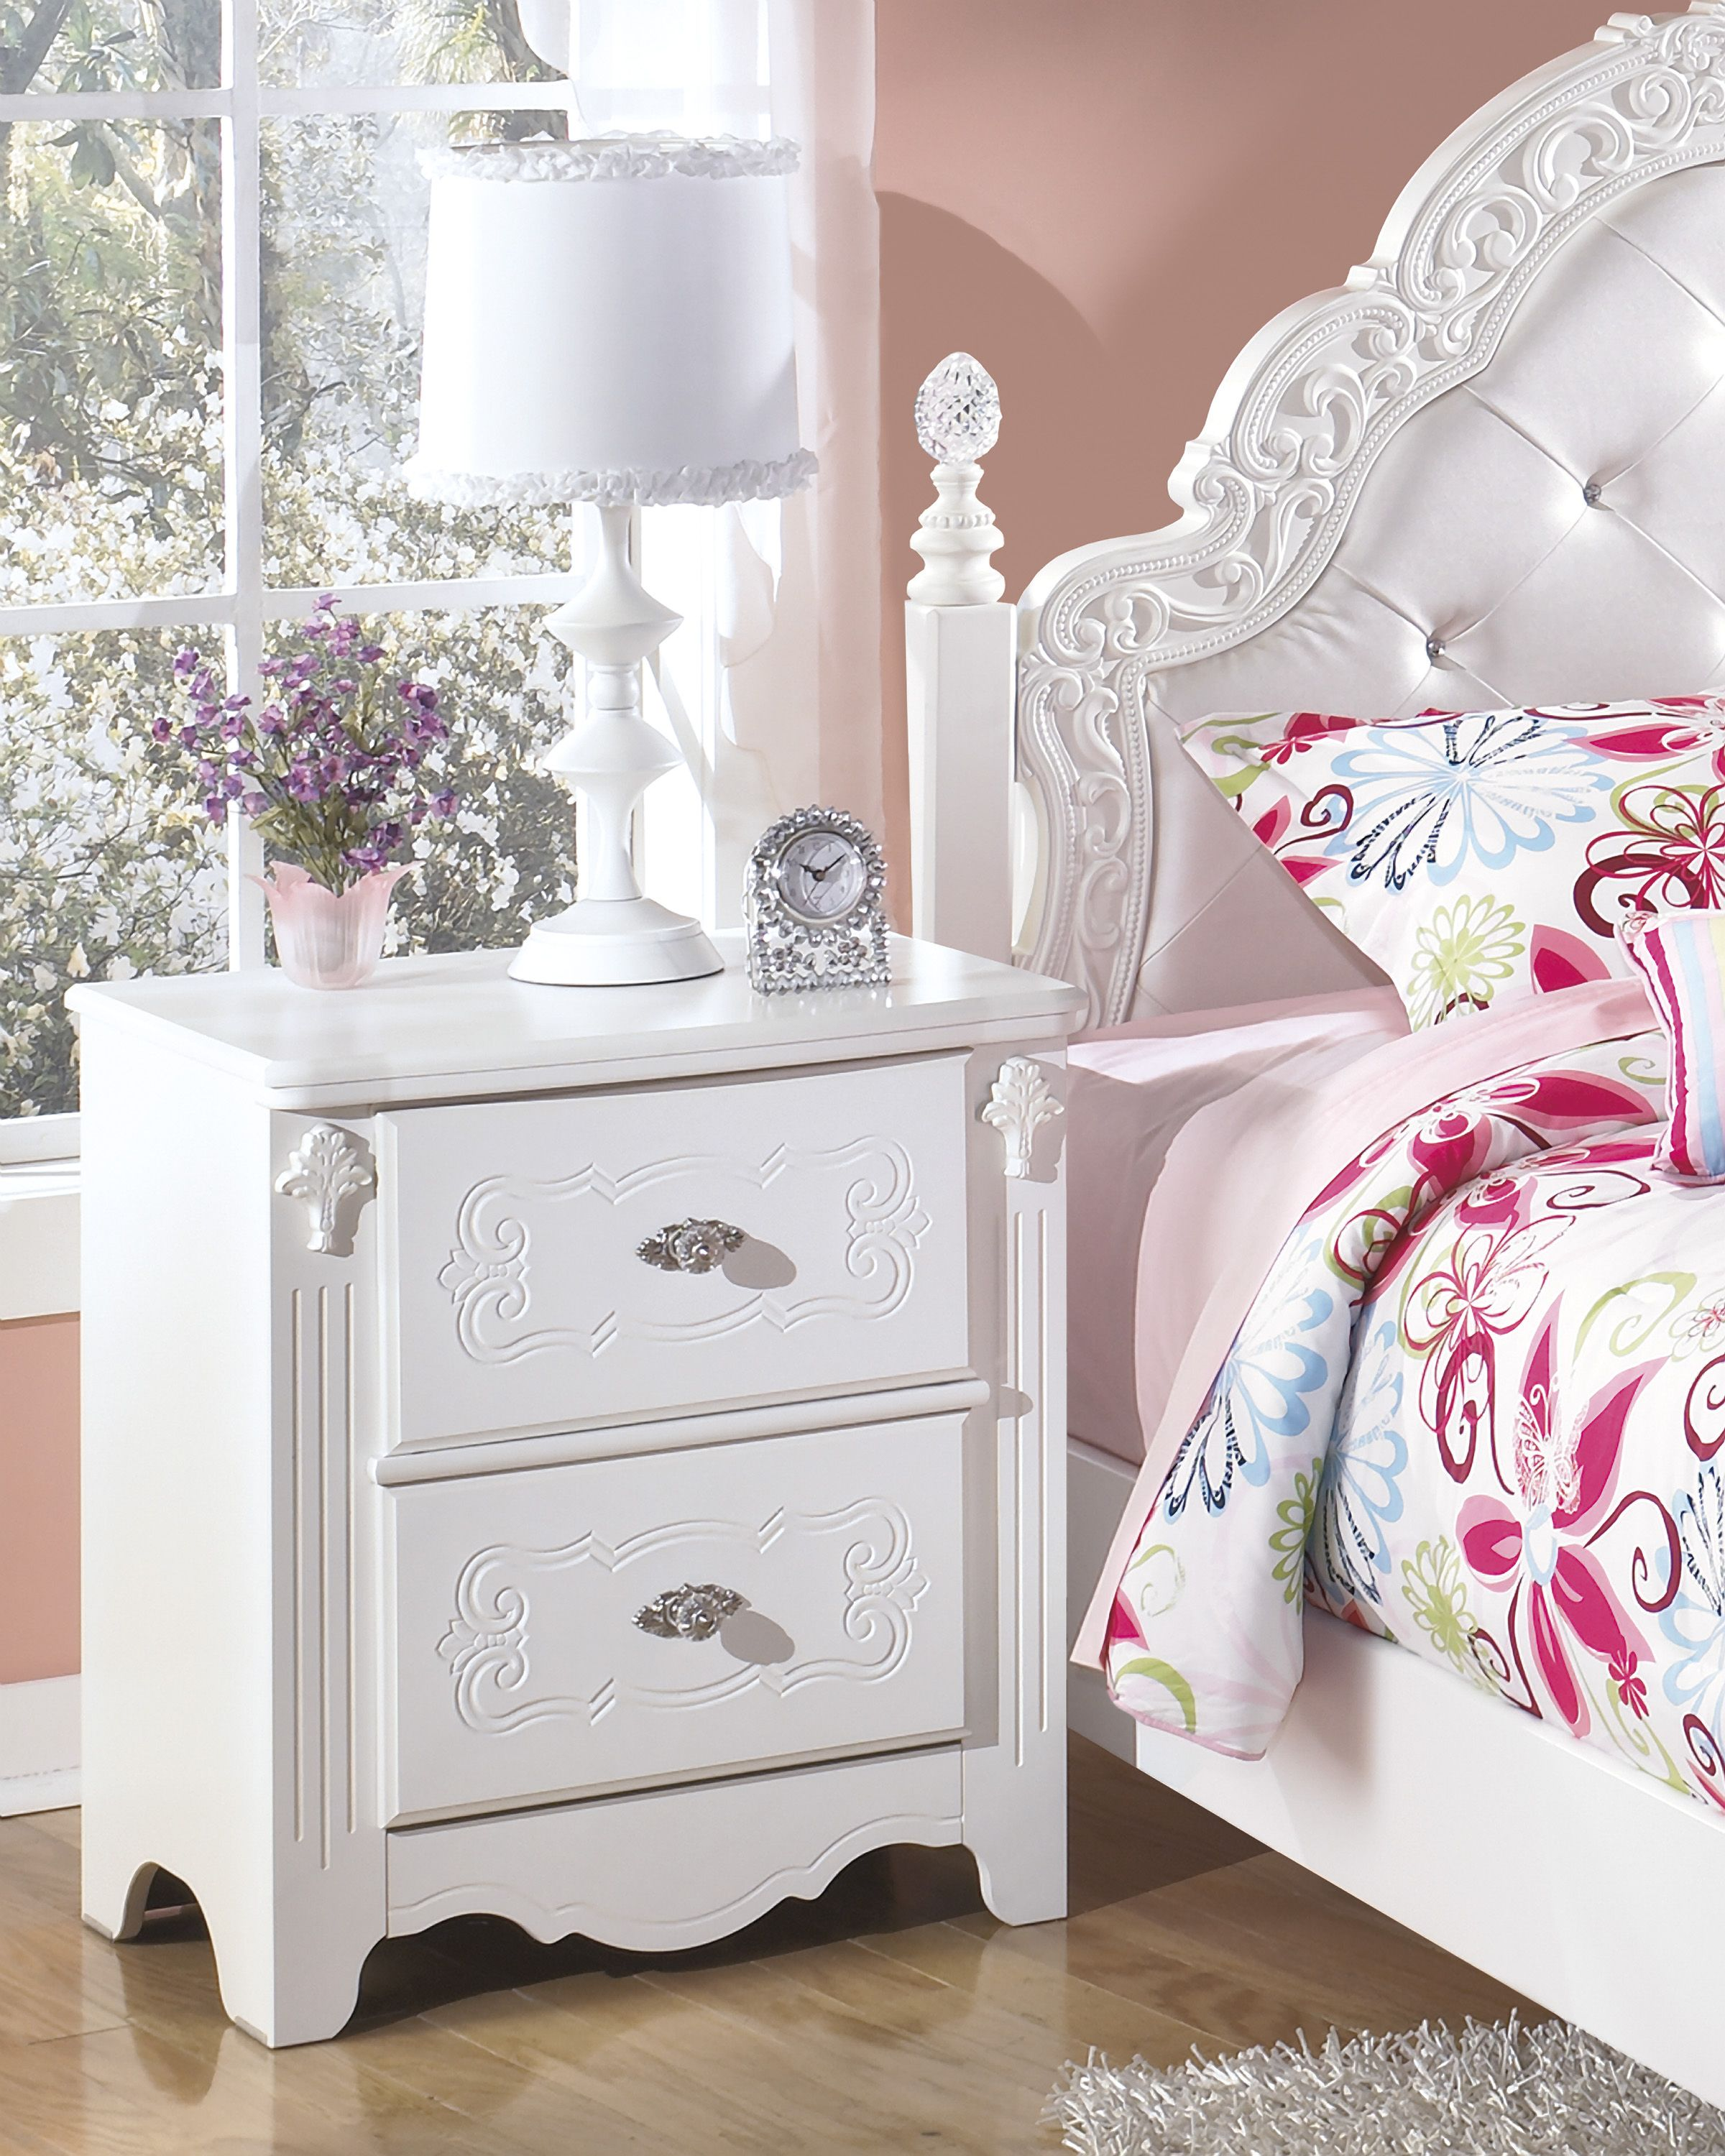 Exquisite Nightstand White furniture living room, White